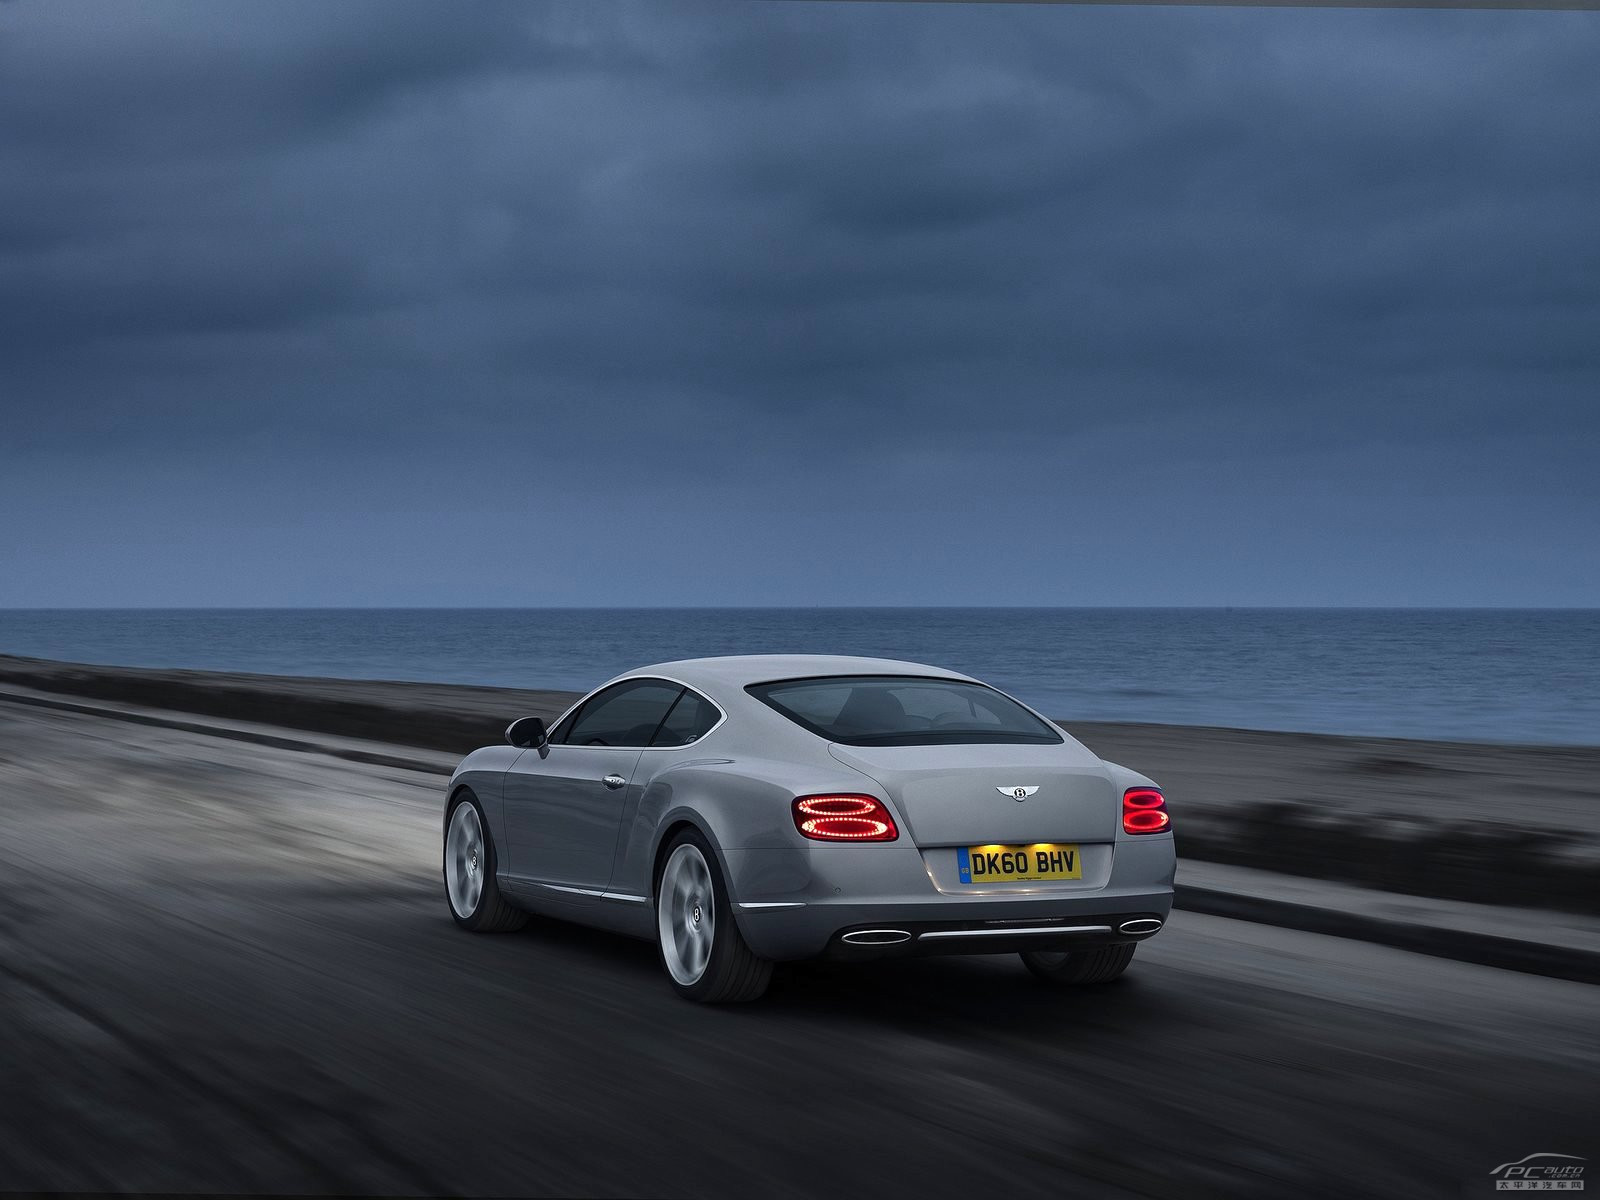 2012 Bentley Continental Gt Evaluation With Full Wallpaper